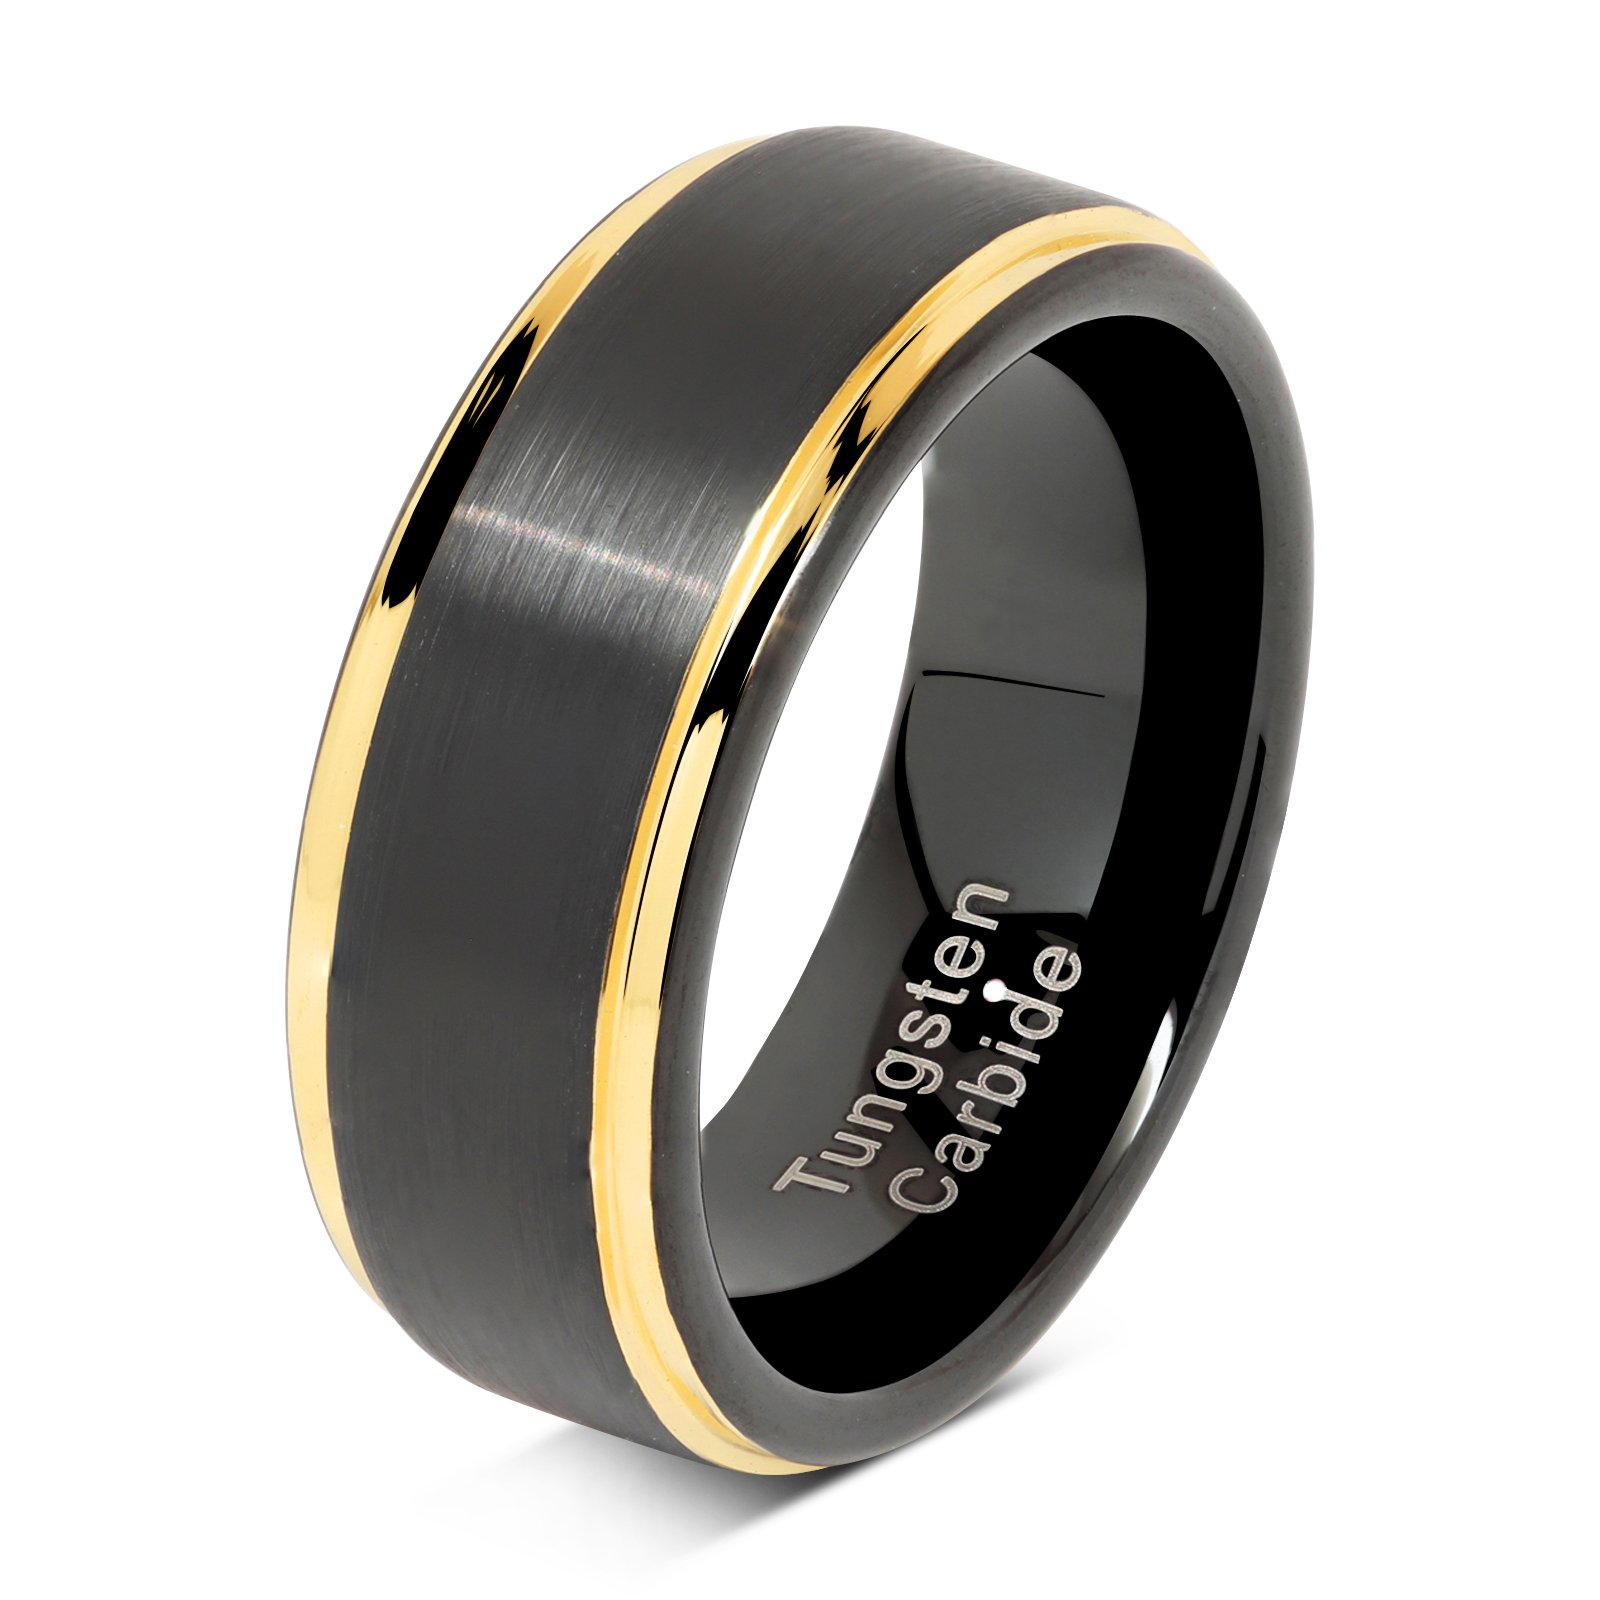 100S JEWELRY Tungsten Rings For Men Two Tone Black Gold Wedding Band Center Brushed Engagement Size 8-16 (10)